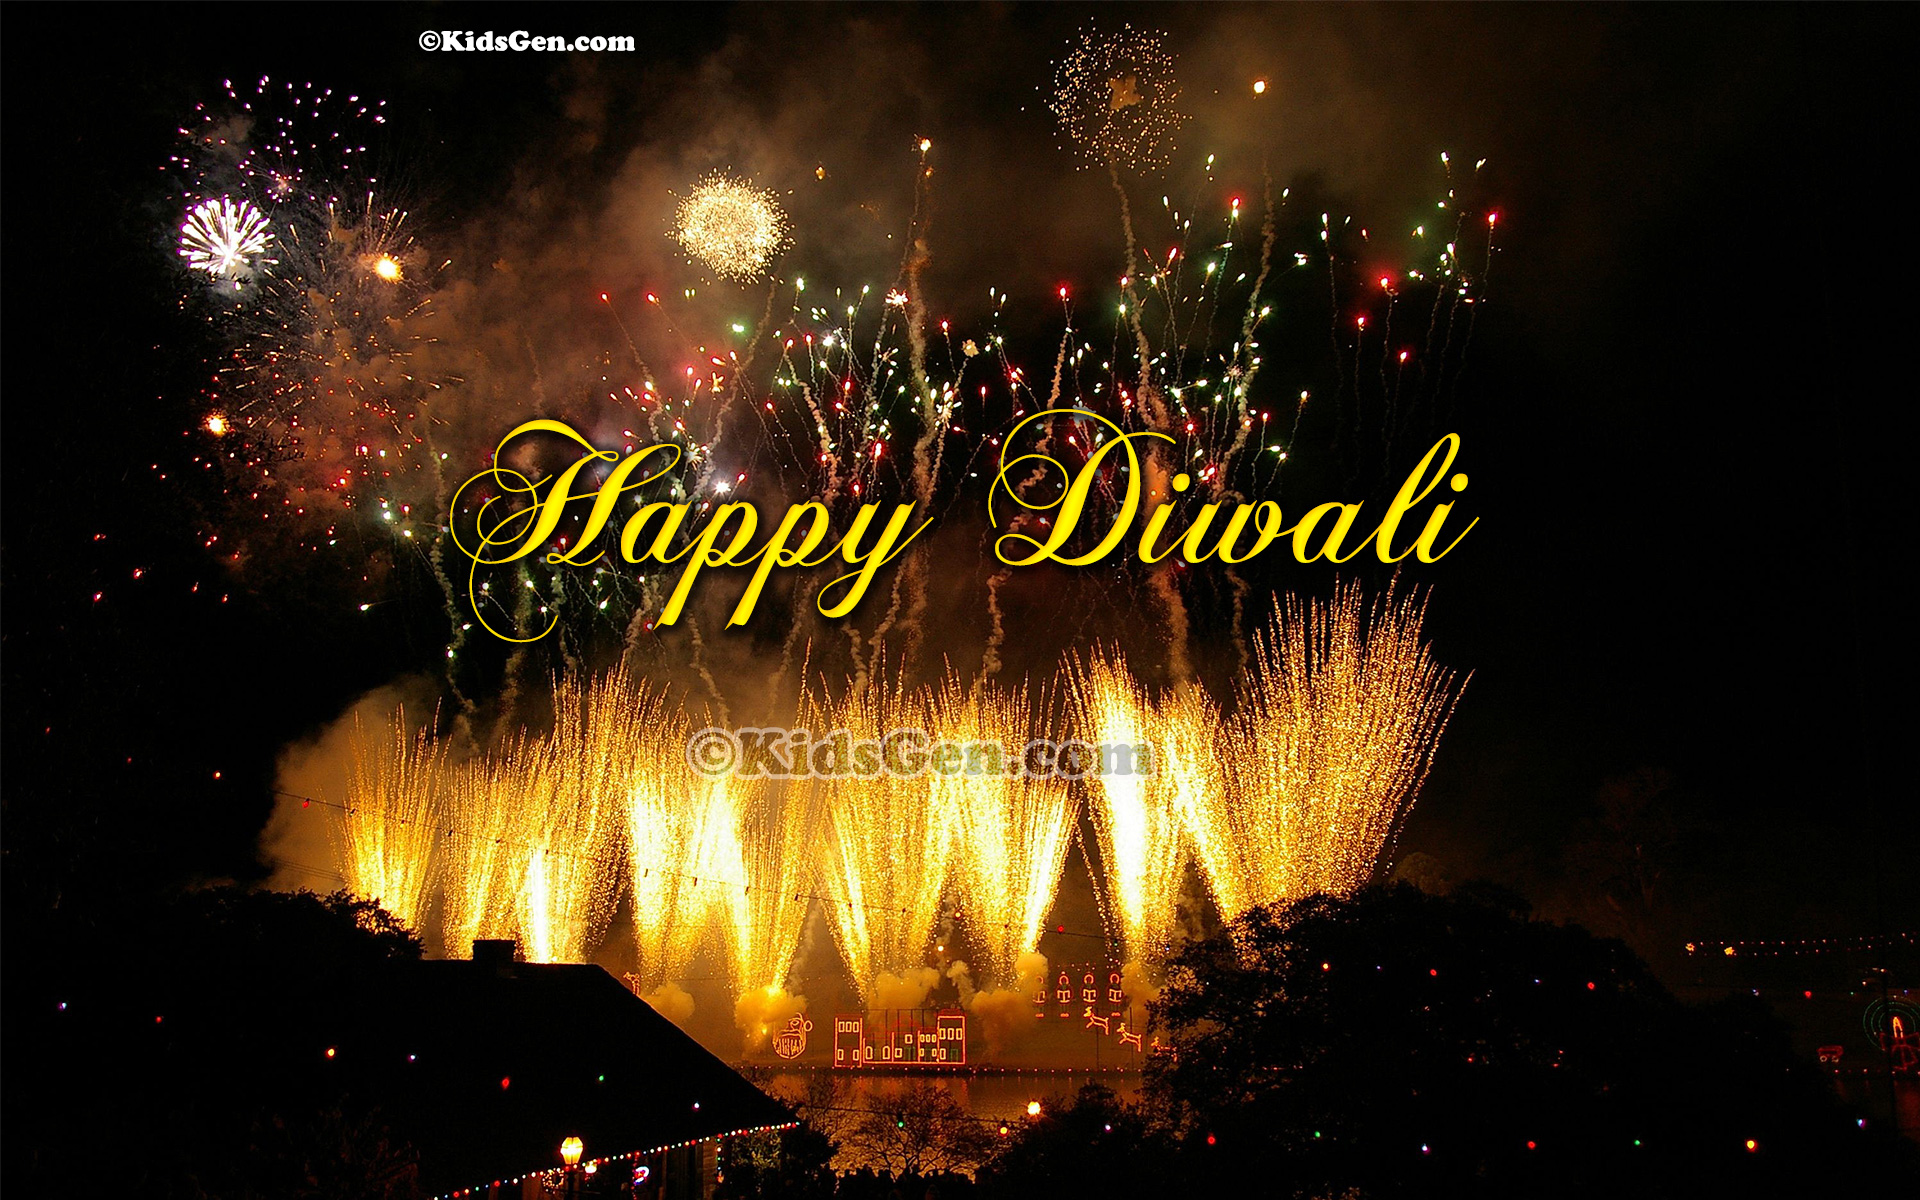 Happy Diwali Fireworks - Movie HD Wallpapers for Diwali Fireworks Wallpapers  45jwn